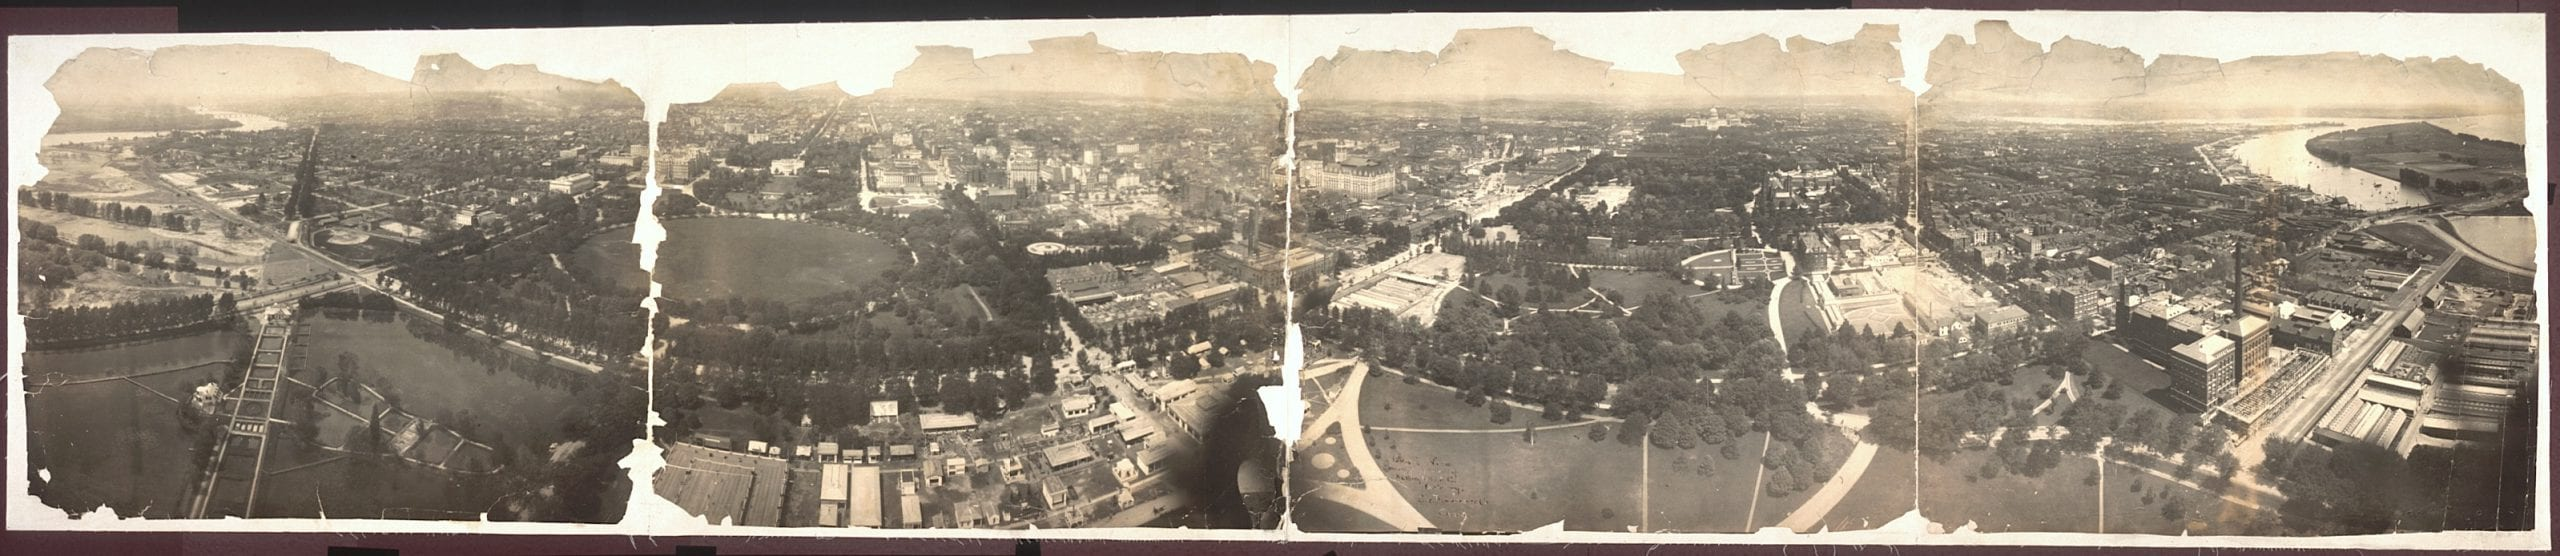 bird's-eye view of Washington in 1905